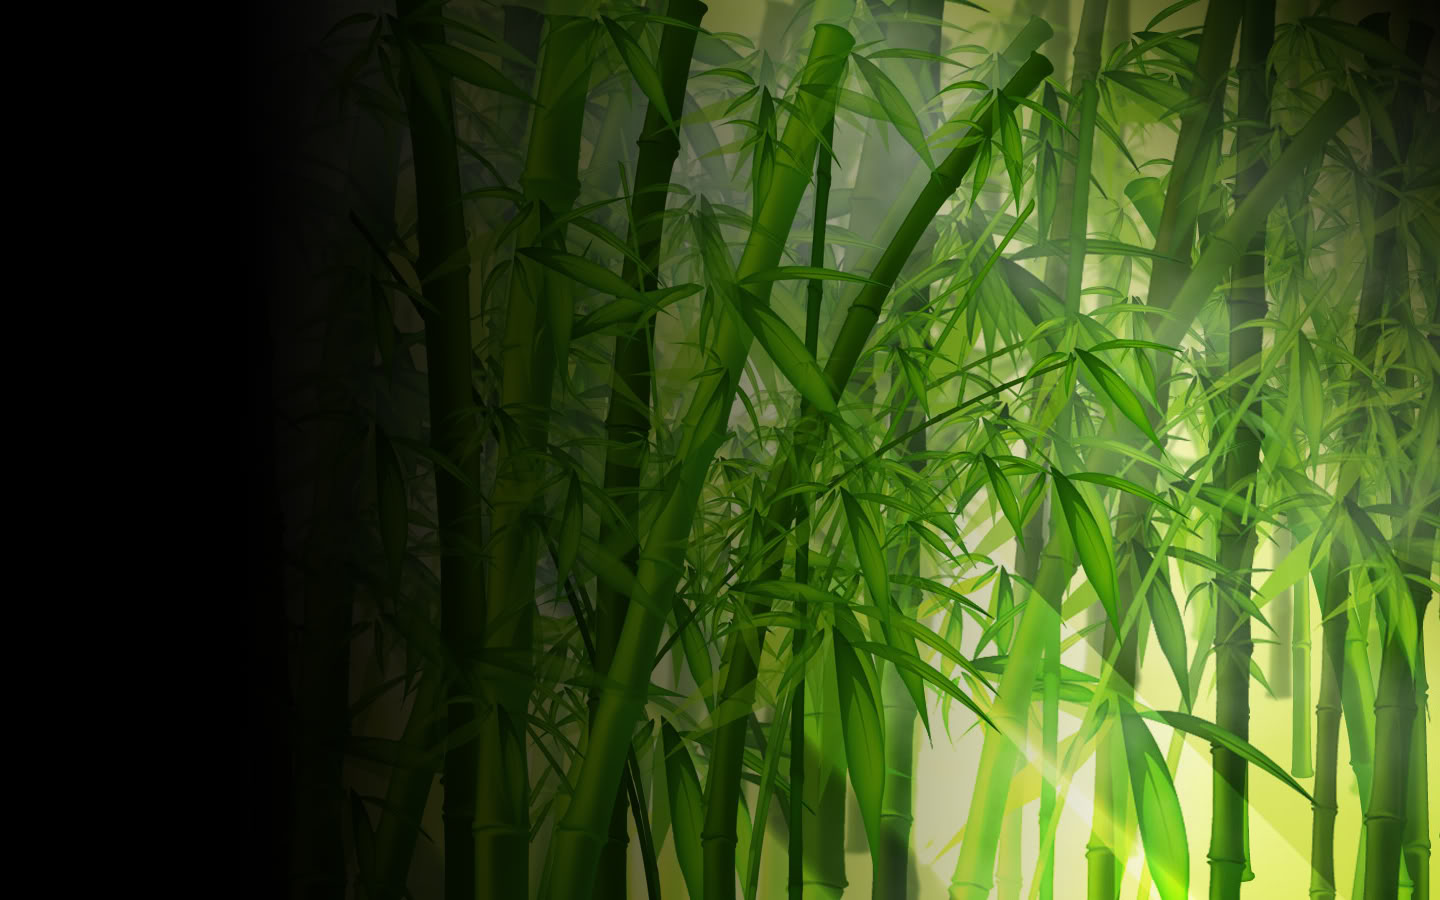 bamboo_1400x900_wallpaper